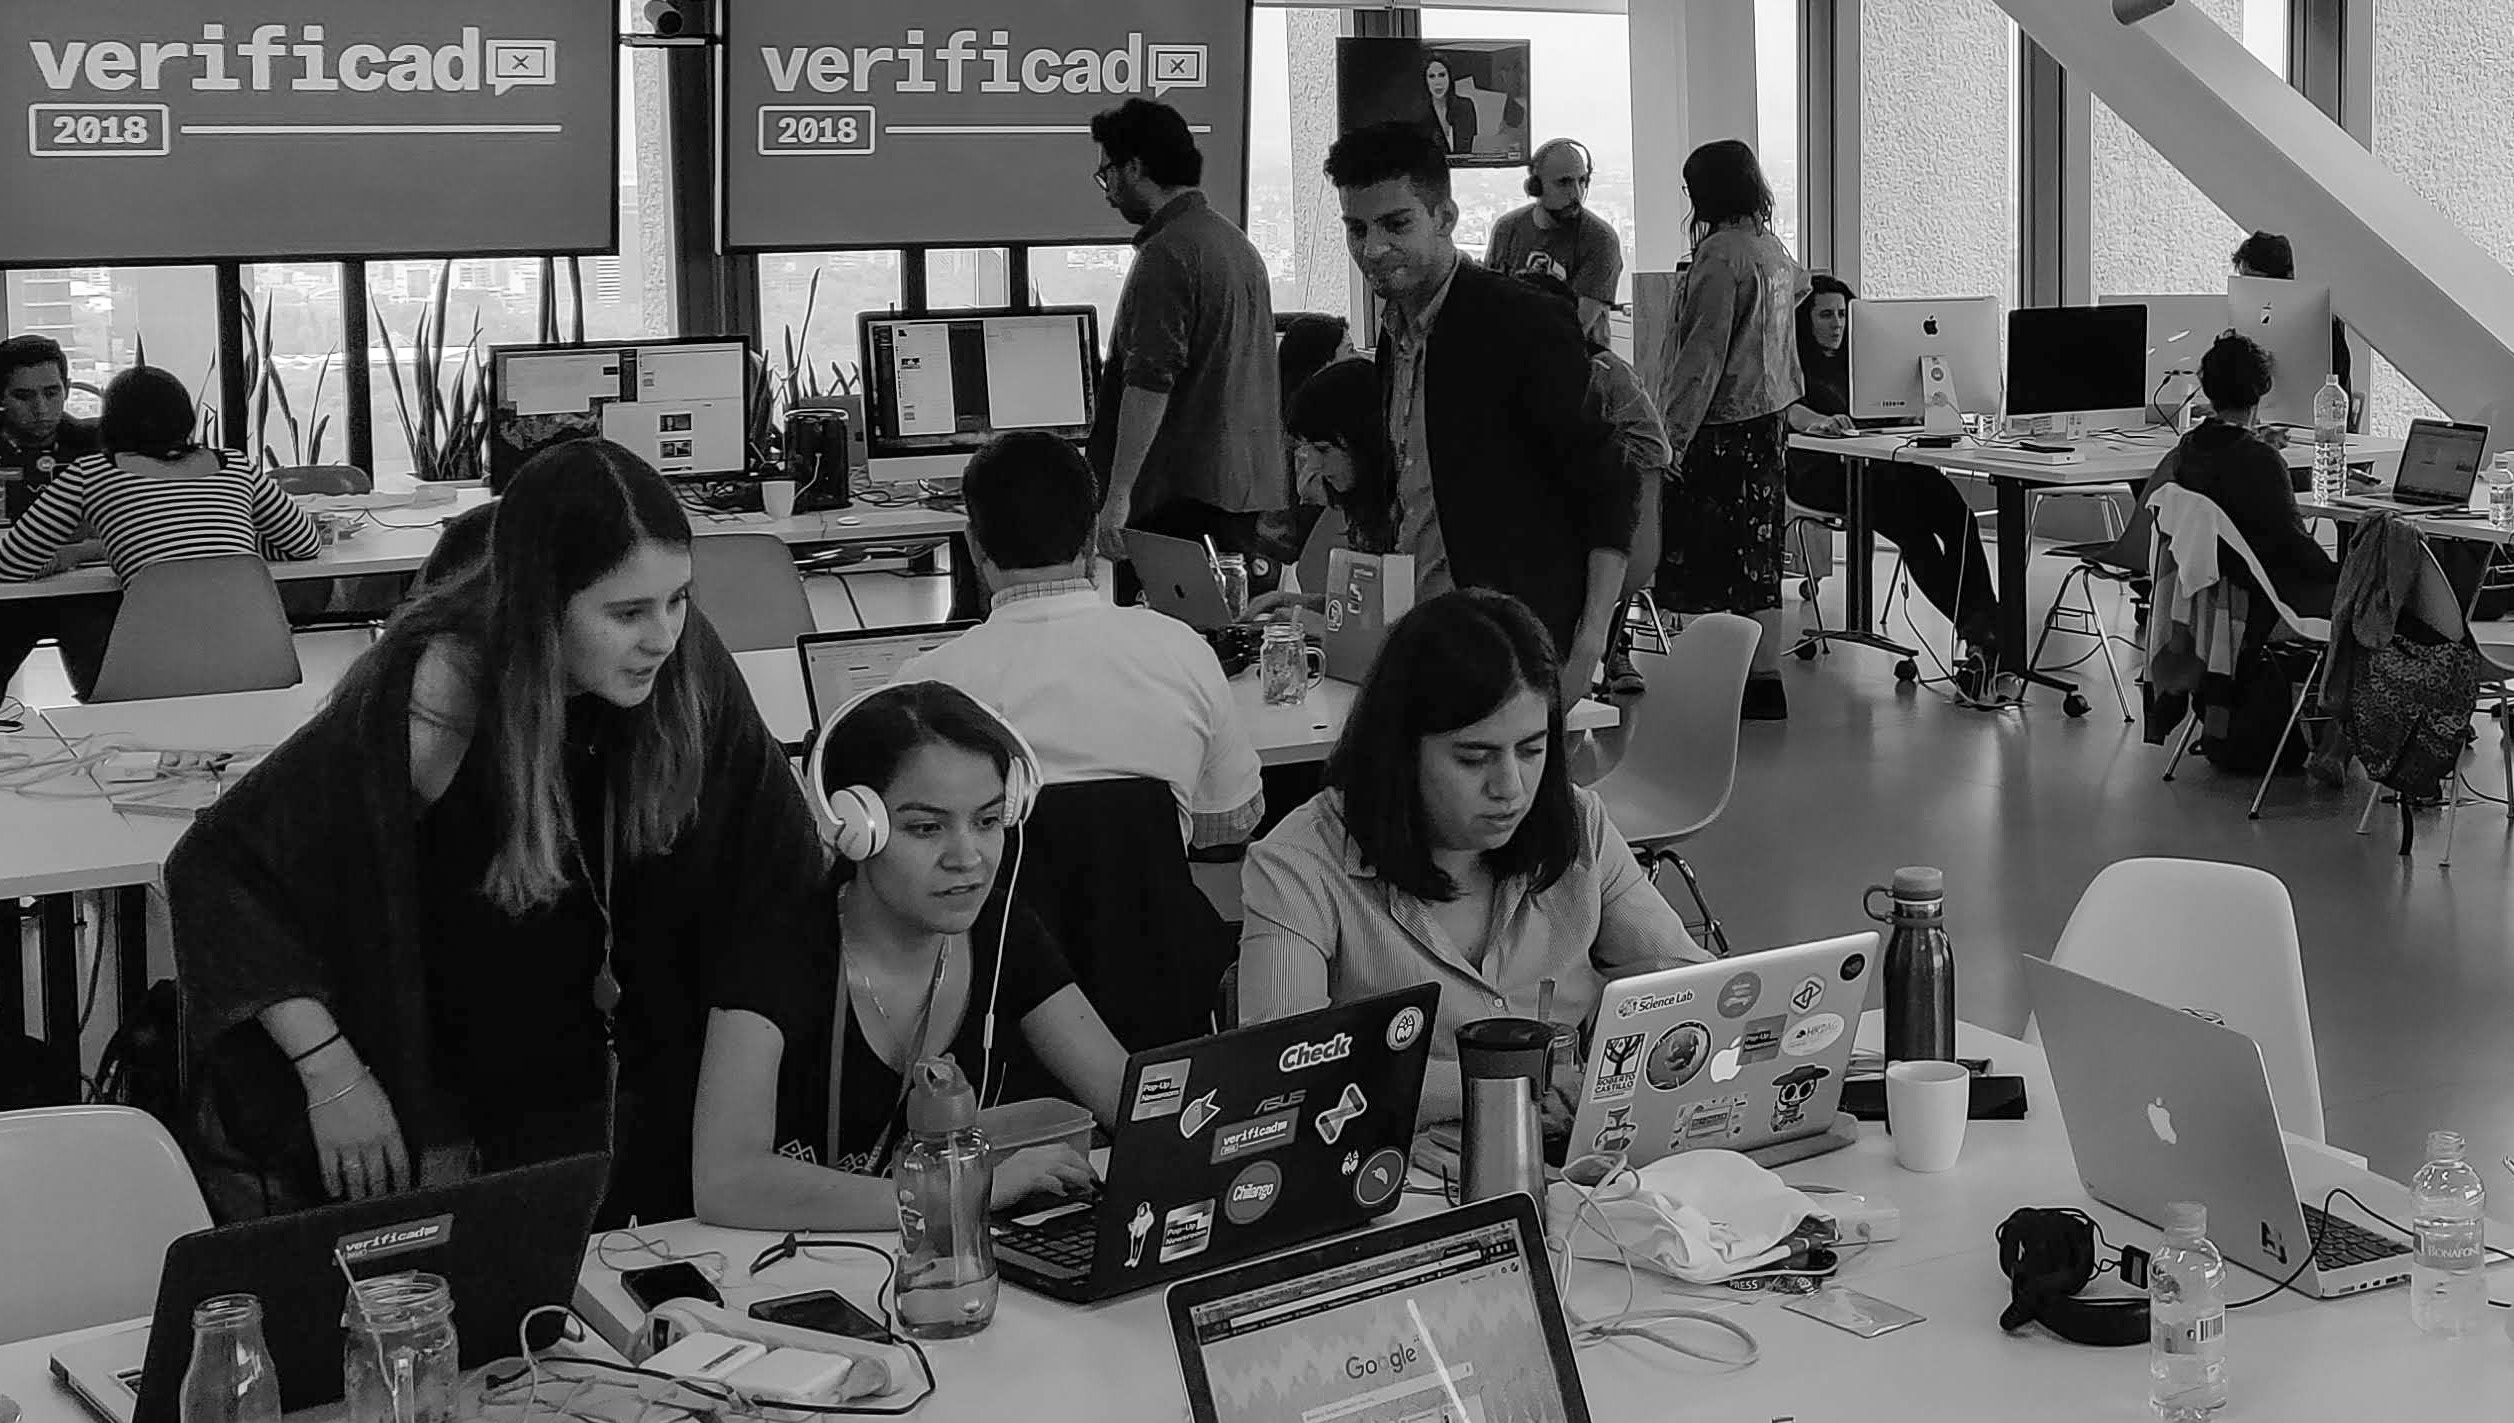 At the Verificado 2018 Pop-Up Newsroom, we worked with over 100 journalists from across Mexico to design collaborative processes for monitoring and debunking misinformation spread via social networks.